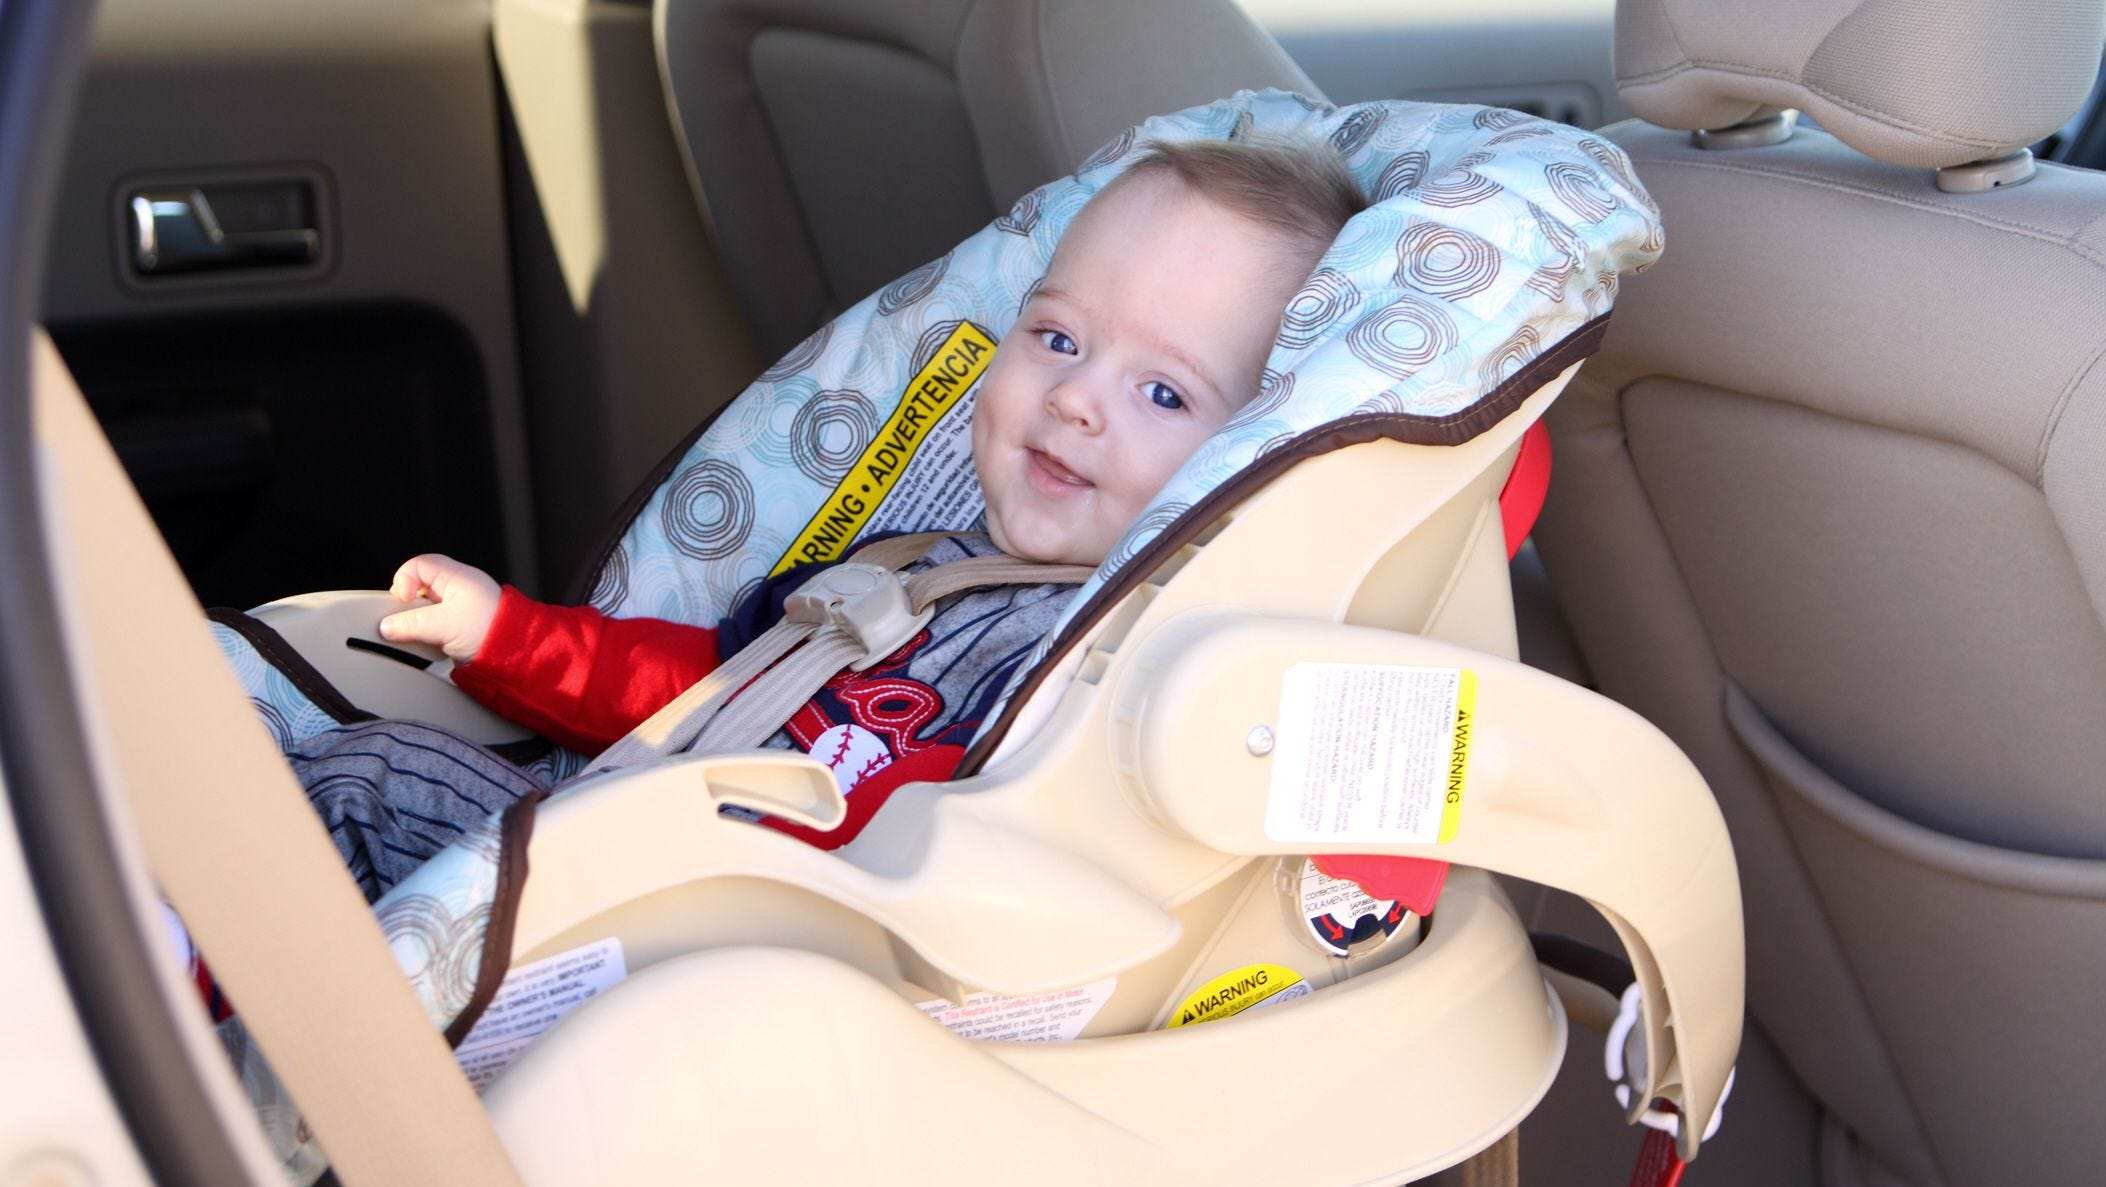 Experts Change Rules On Rear Facing Baby Car Seat Limits To Save Lives